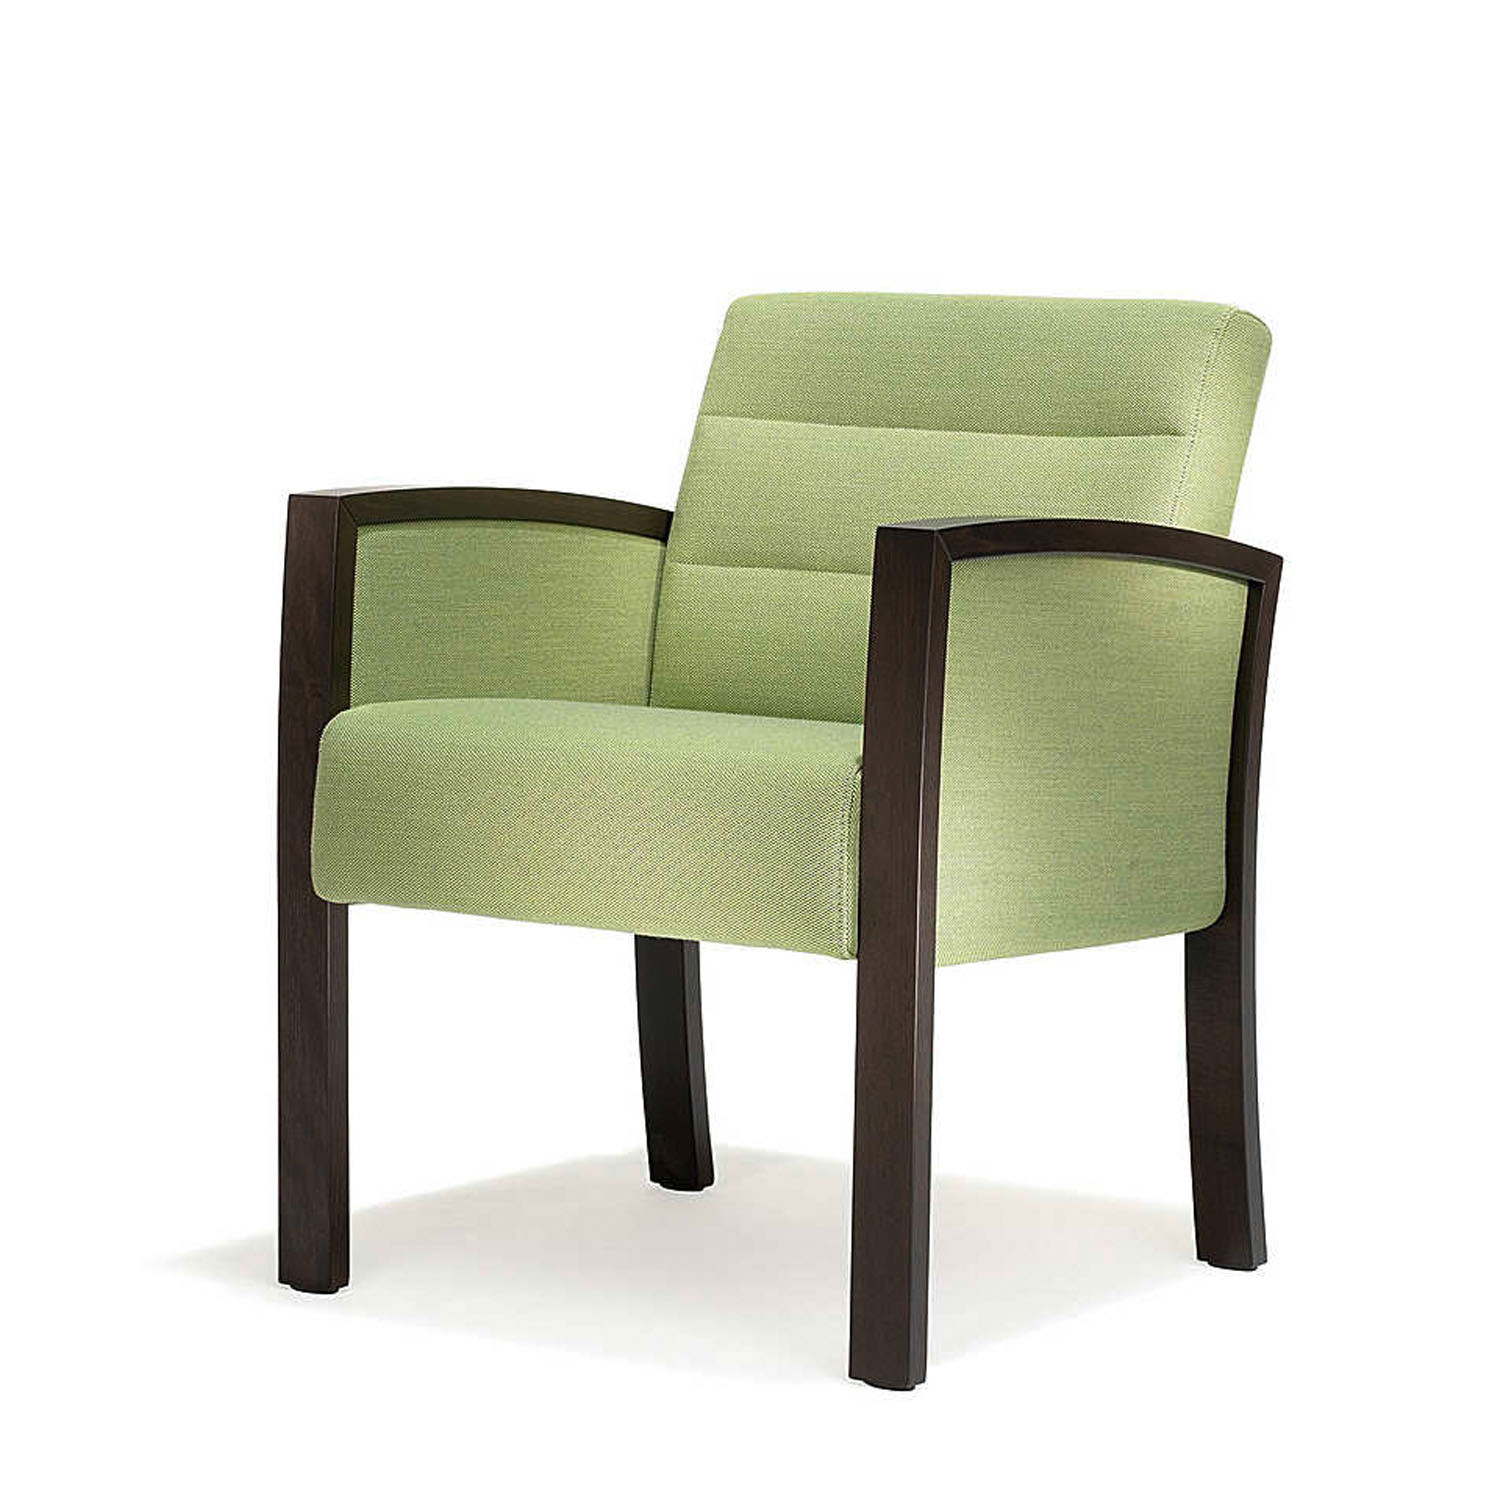 5050 Vega Armchair with side parts covered in fabric, beech legs and armpads